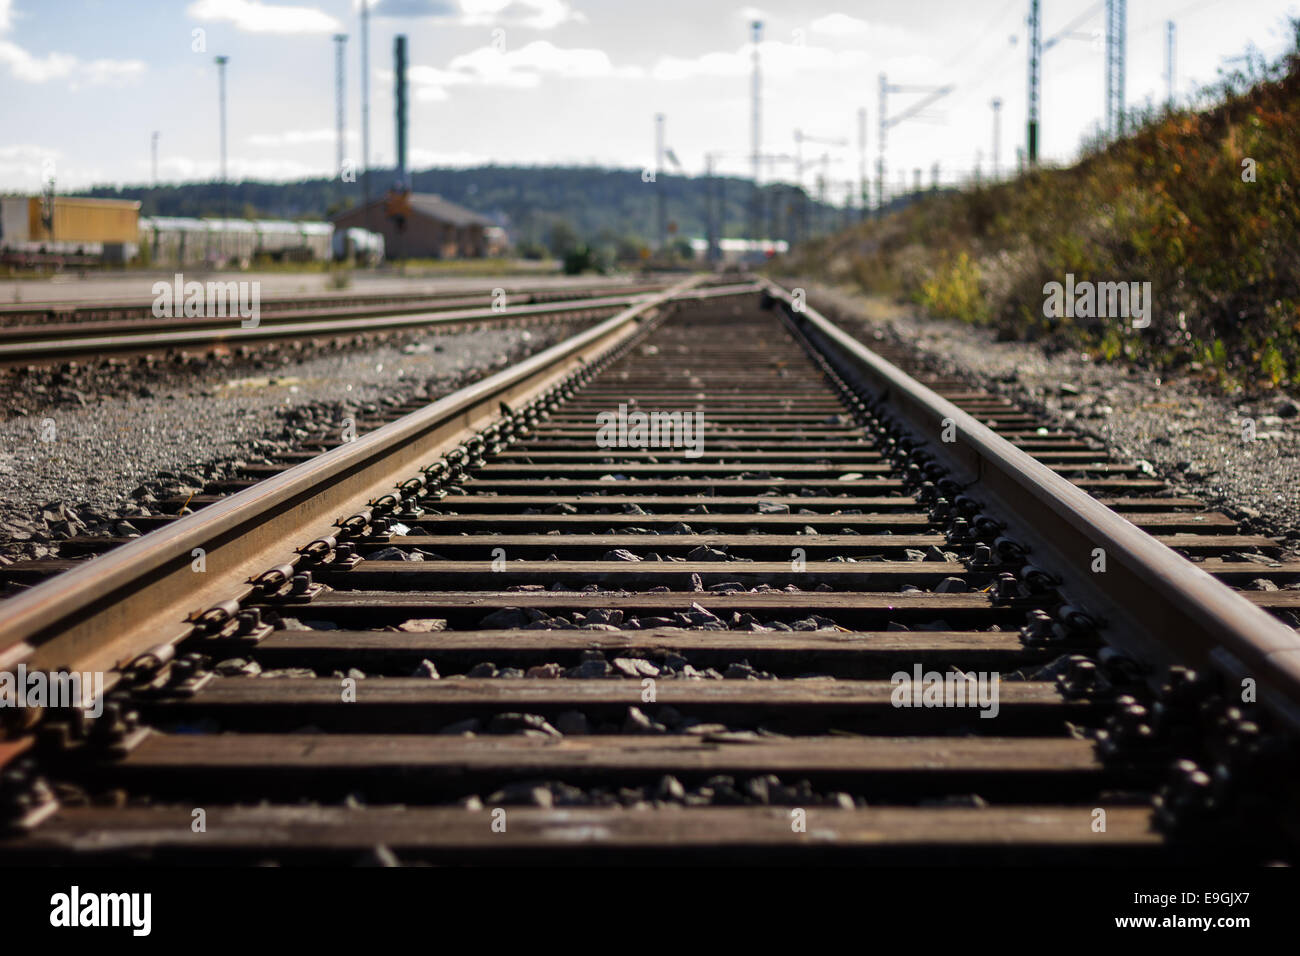 Nobody at a straight railroad track outdoors in daylight, small depth of field - Stock Image